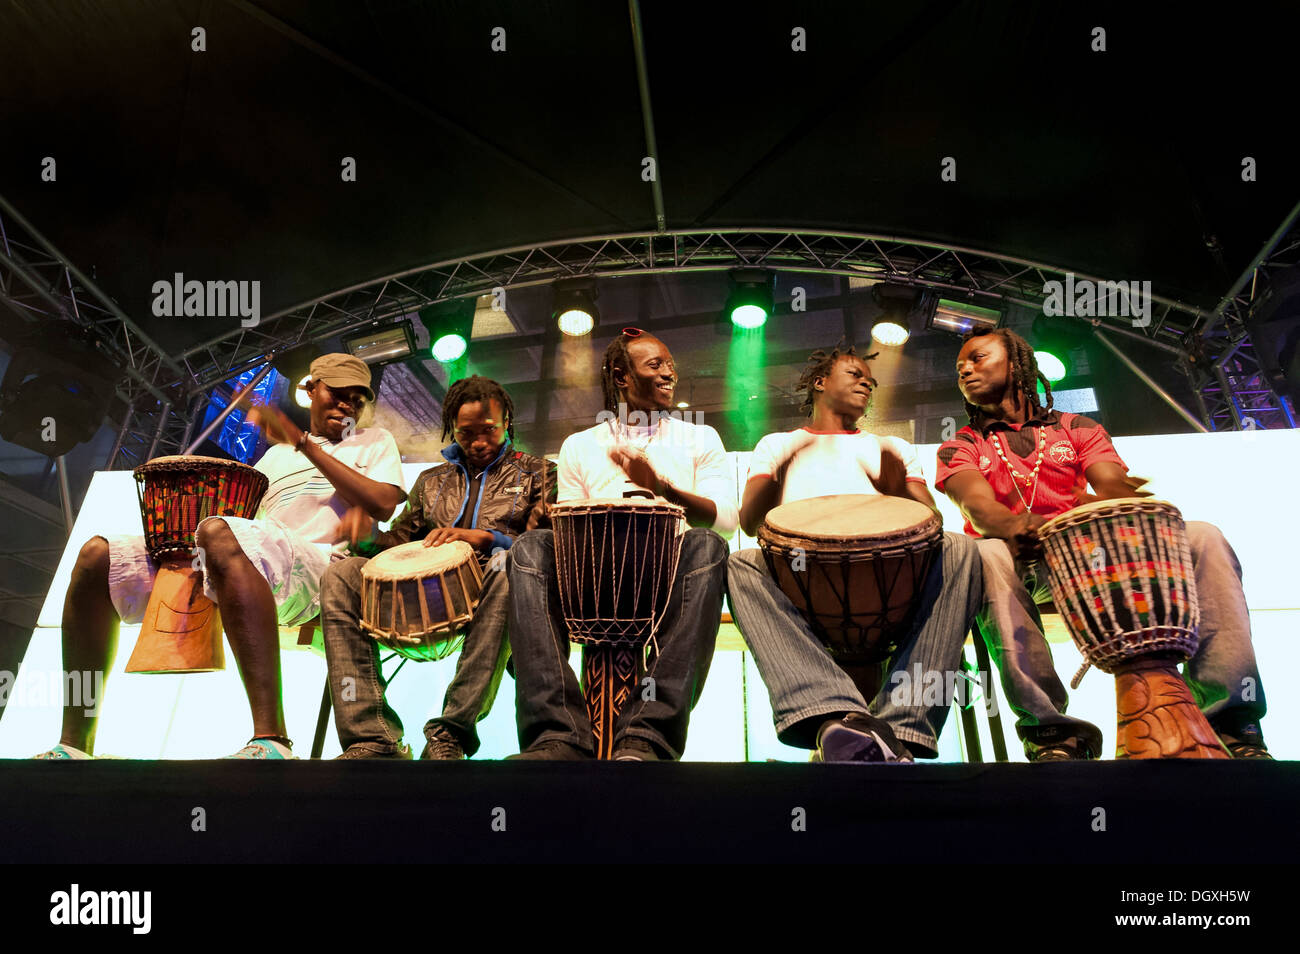 A group of musicians from Senegal giving a spontaneous concert at the closing party of the Munich Film Festival in Munich - Stock Image